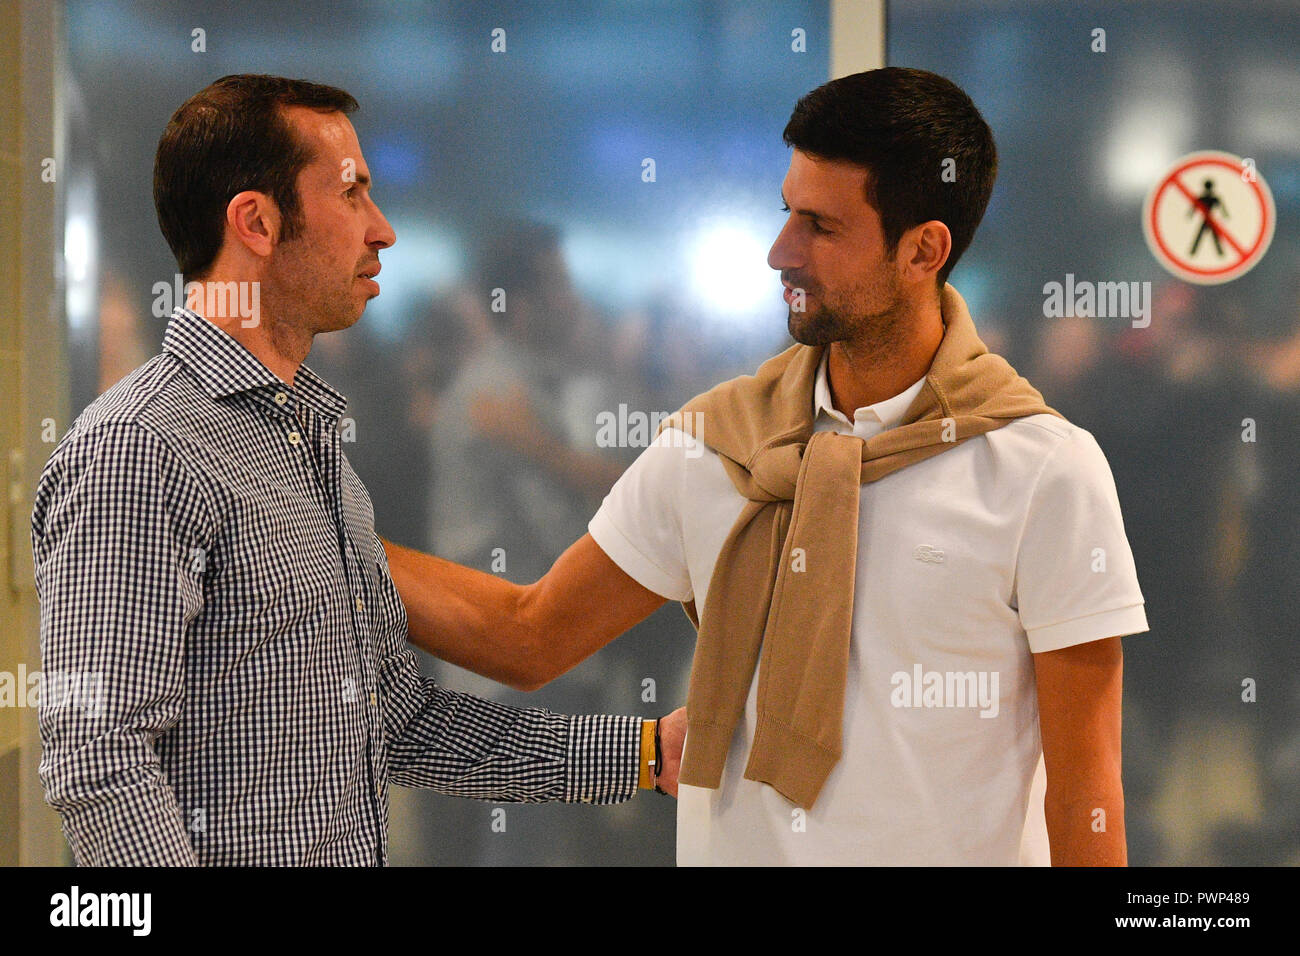 Prague, Czech Republic. 17th Oct, 2018. Serbian tennis star Novak Djokovic, right, greets with Radek Stepanek as he arrived to Prague on Wednesday, October 17, 2018, prior to the tomorrow's farewell party of tennis player Stepanek ending his career. Credit: Michal Kamaryt/CTK Photo/Alamy Live News - Stock Image